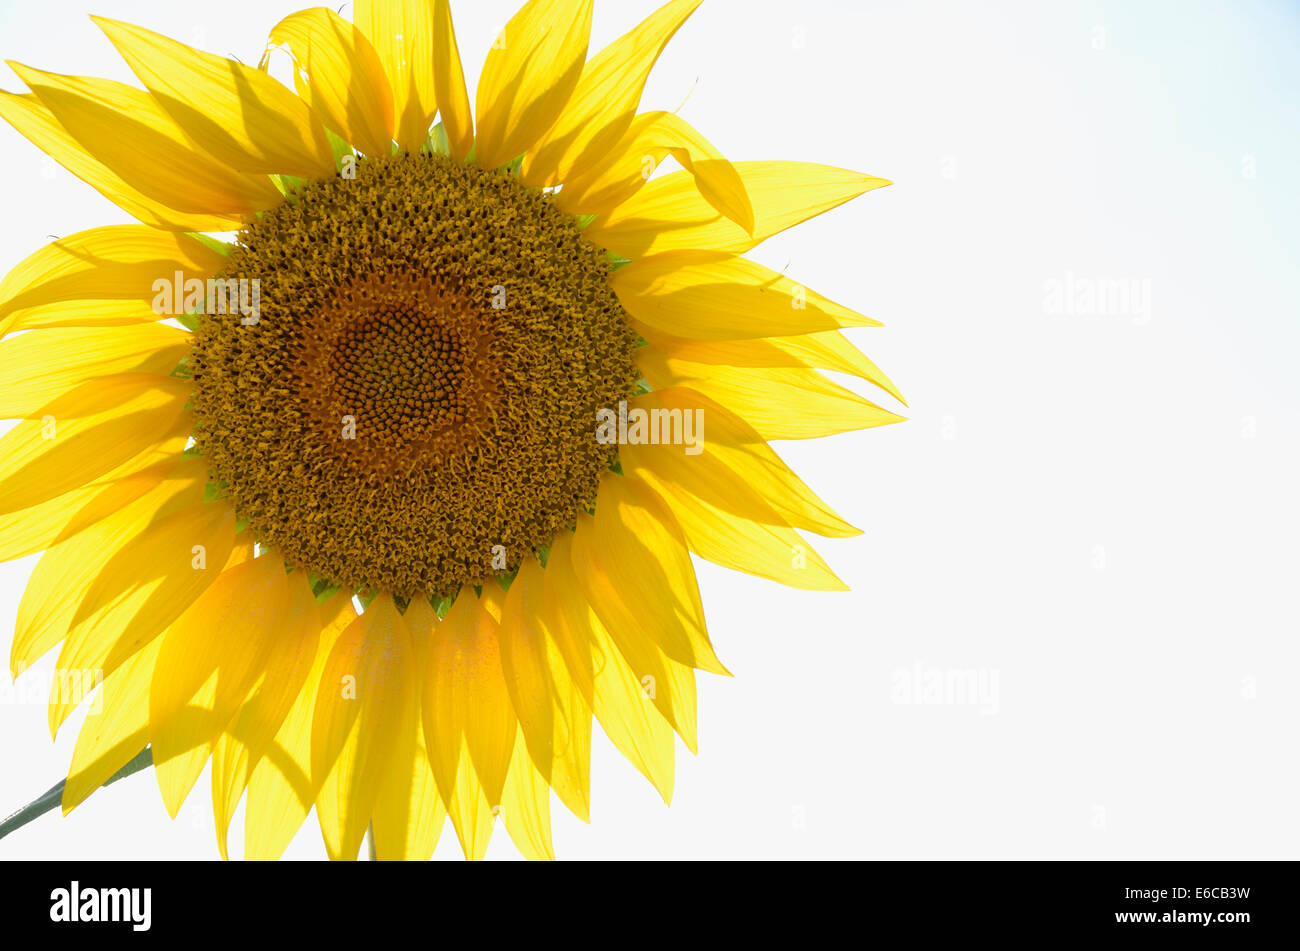 Sunflower close-up view - Stock Image